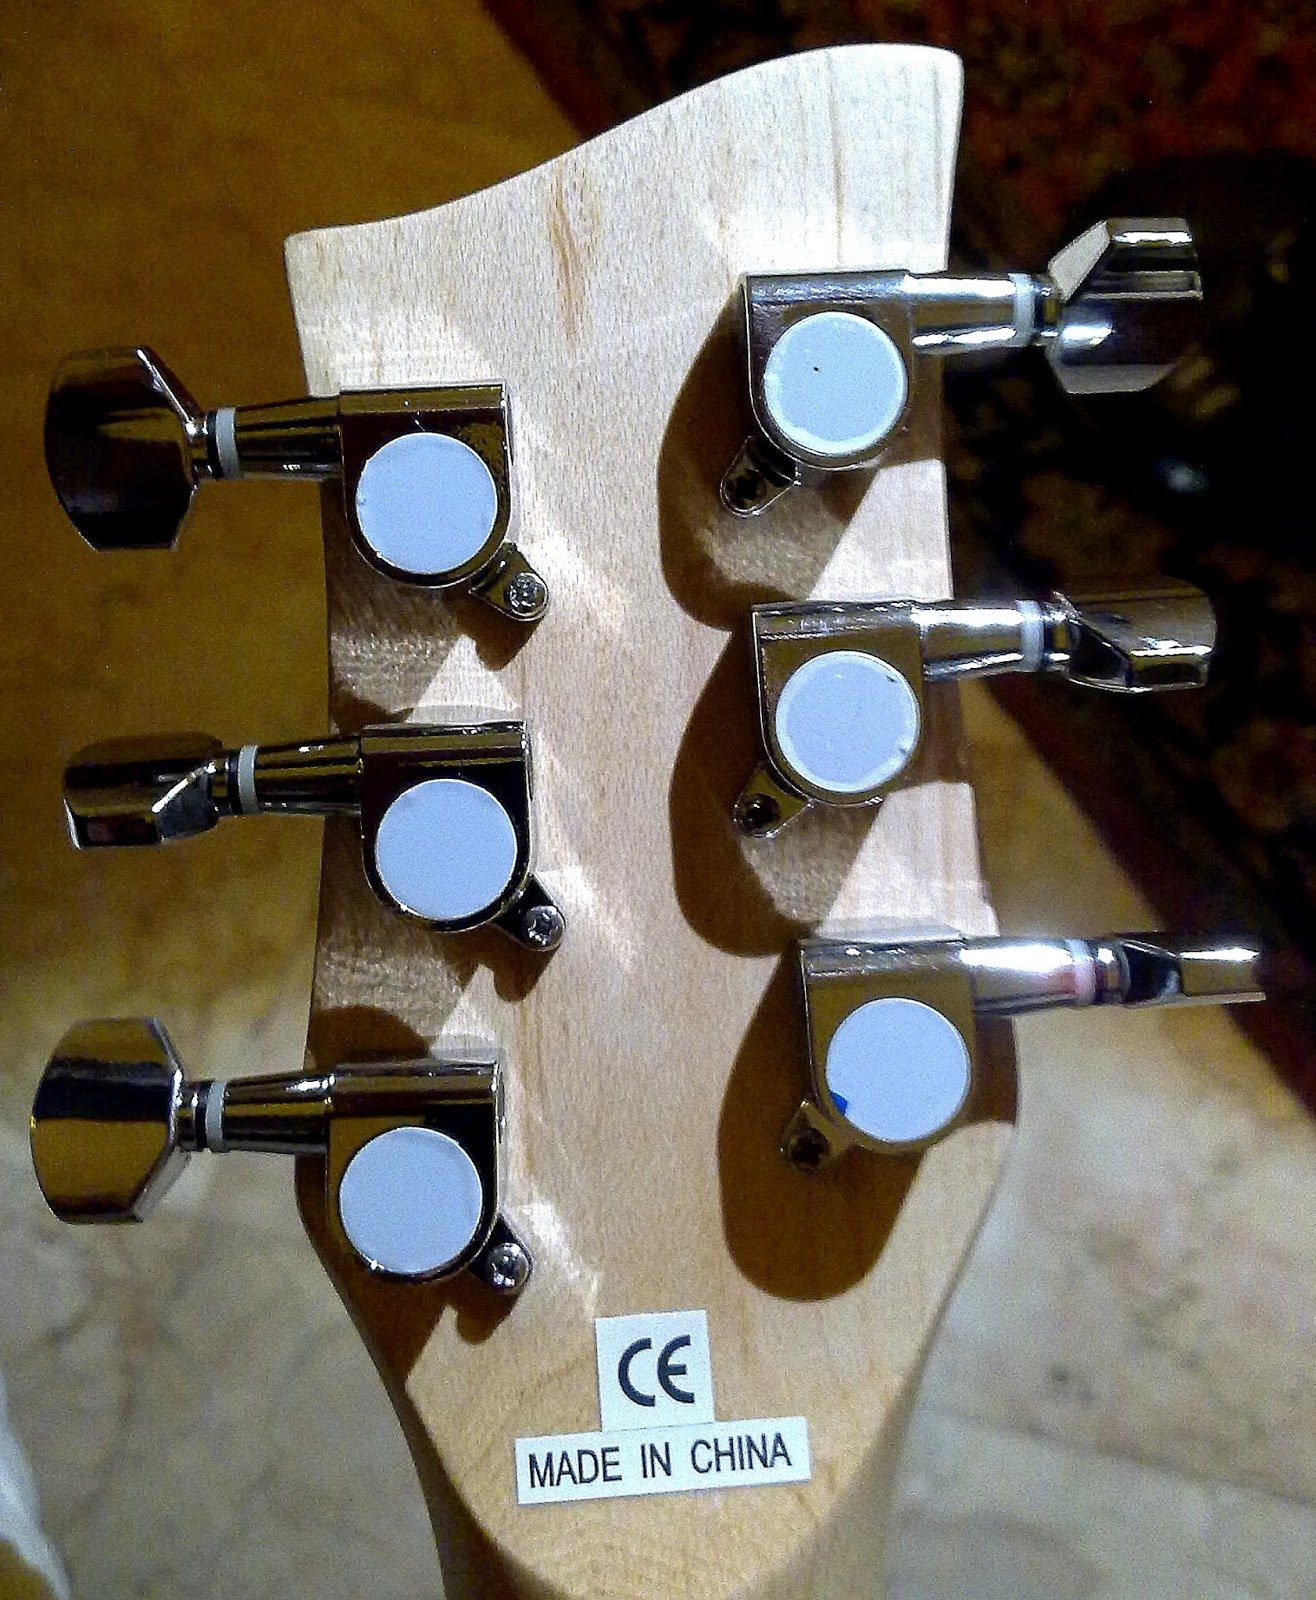 small resolution of at the head stock i unscrewed the hexagonal top nut of one tuner and found its centre post wiggling merrily after unscrewing one phillips screw from the